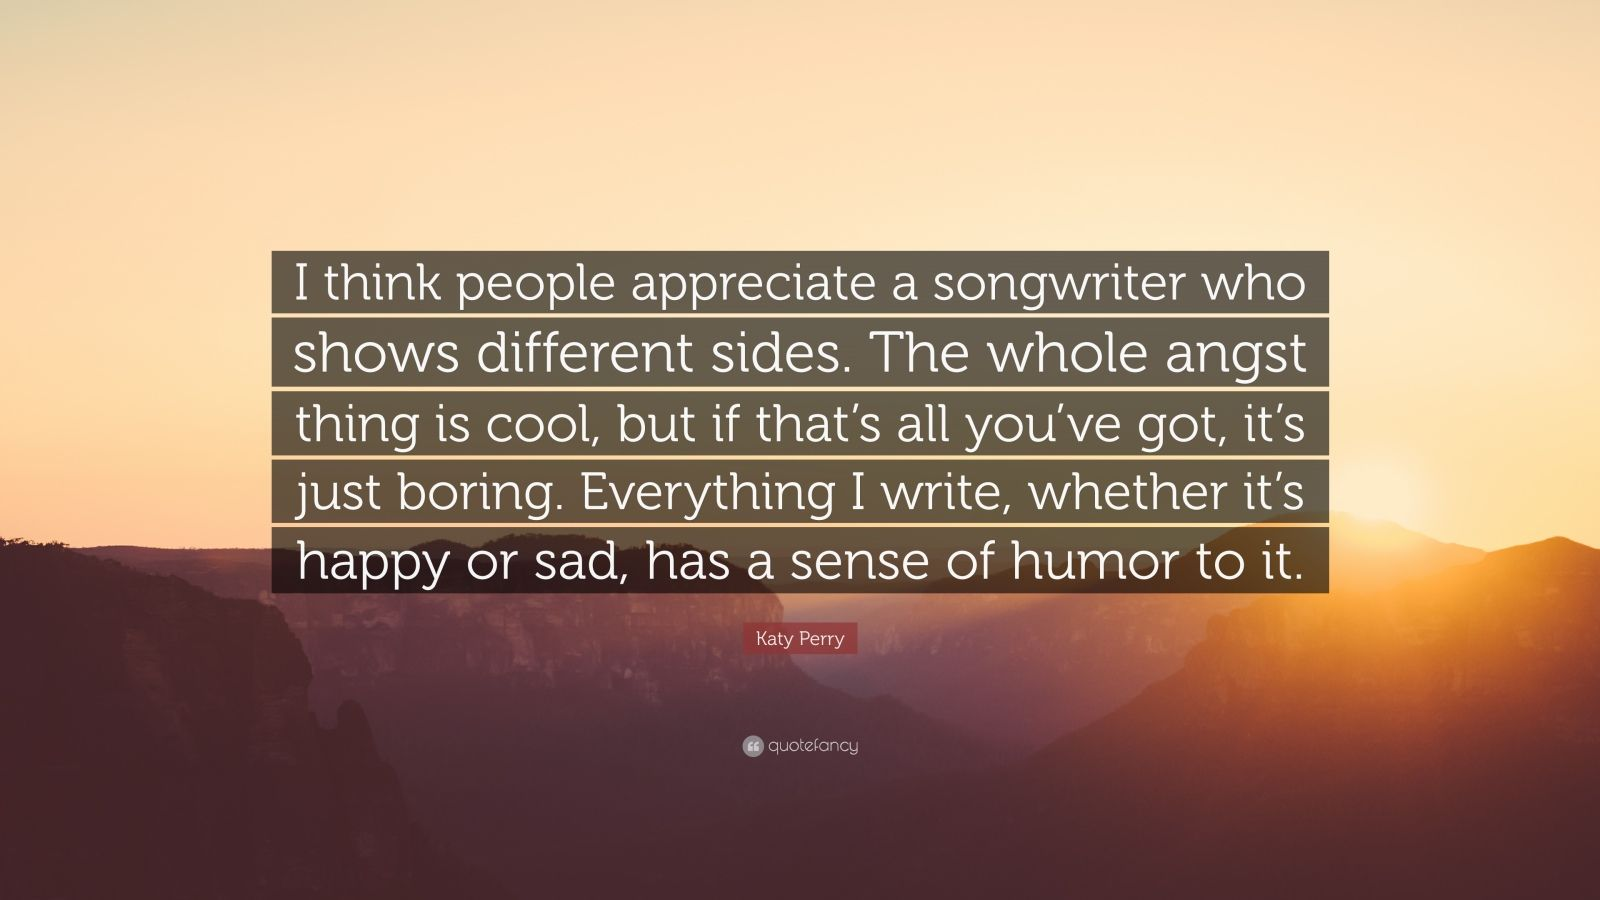 """Katy Perry Quote: """"I think people appreciate a songwriter who shows different sides. The whole angst thing is cool, but if that's all you've got, it's just boring. Everything I write, whether it's happy or sad, has a sense of humor to it."""""""